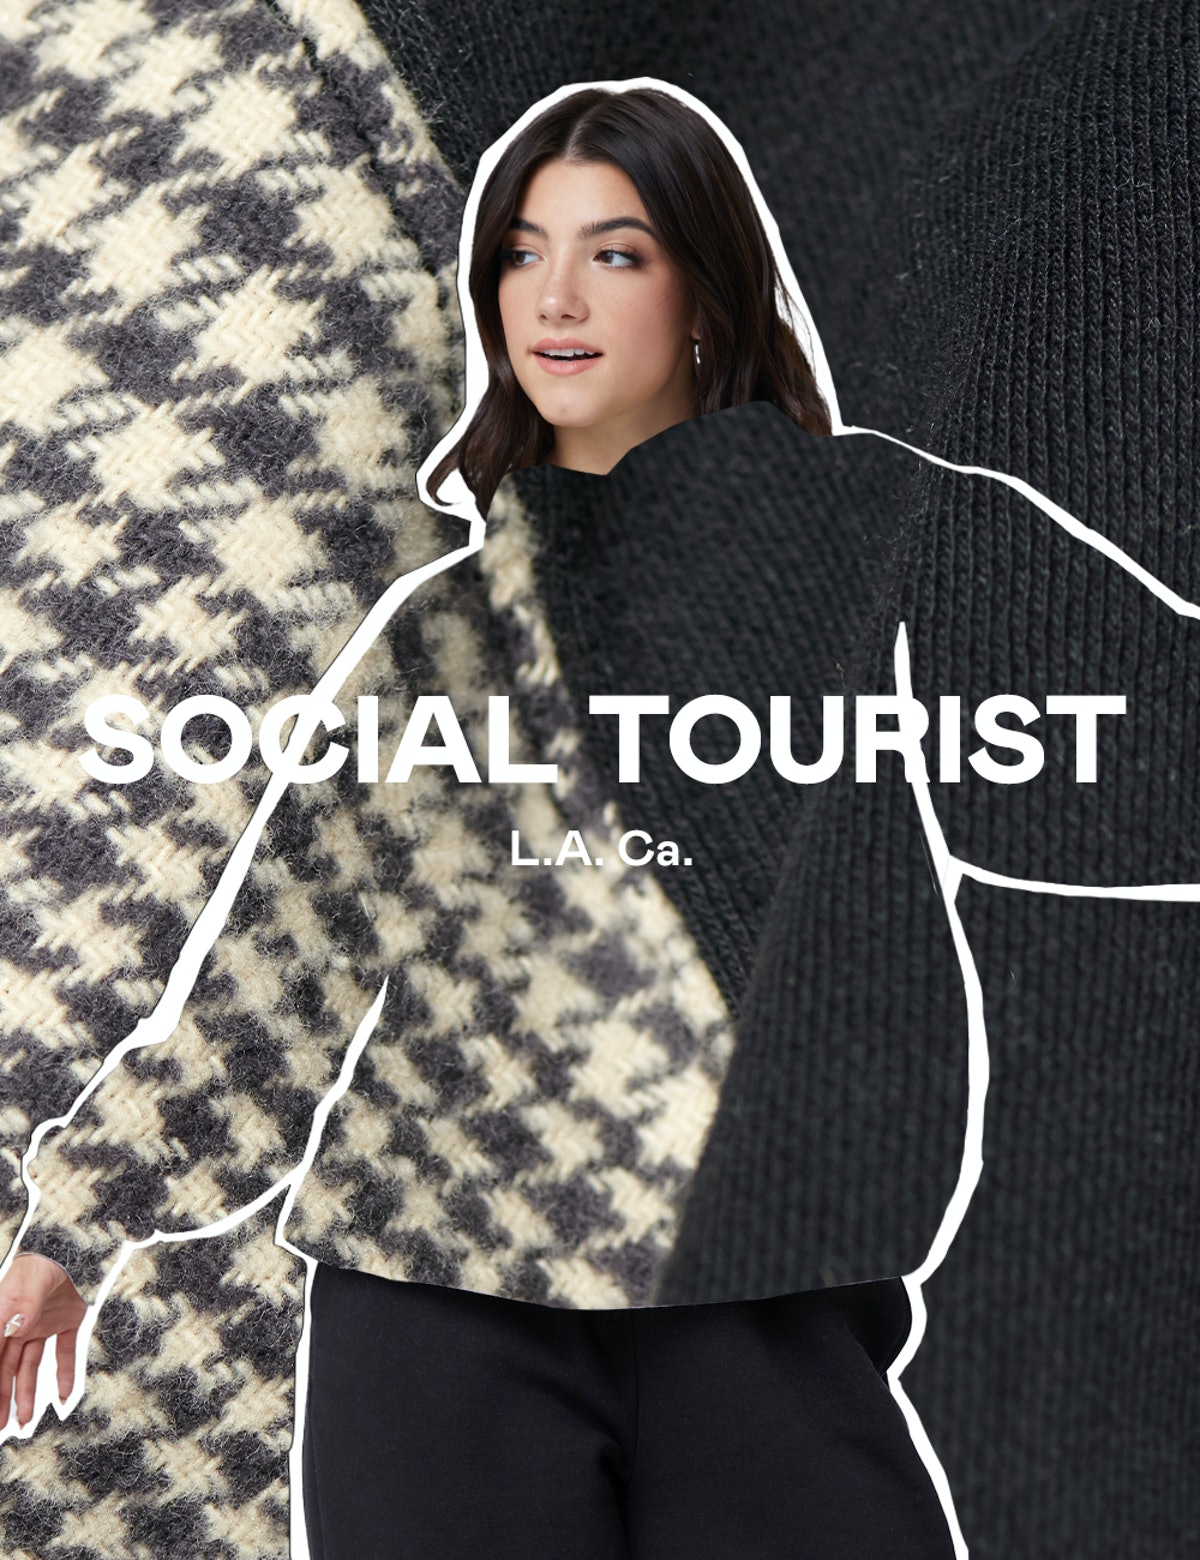 Charli D'Amelio models fabrics and clothing items in the promotional images for her and sister Dixie's new clothing brand Social Tourist.